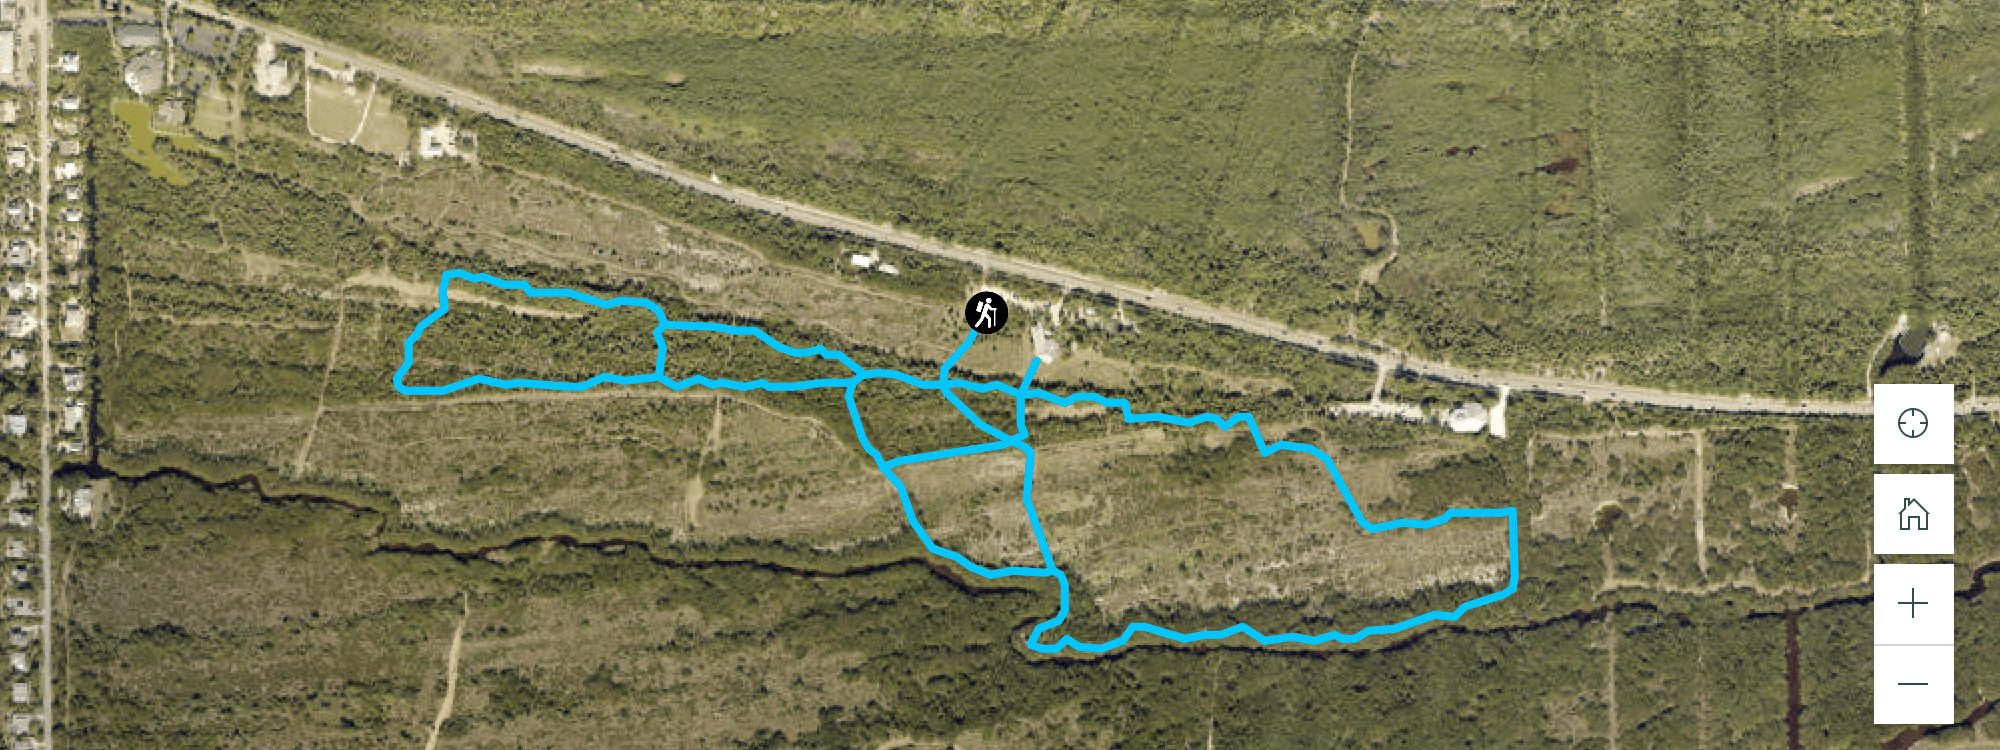 Story Map of Facilities & Trails